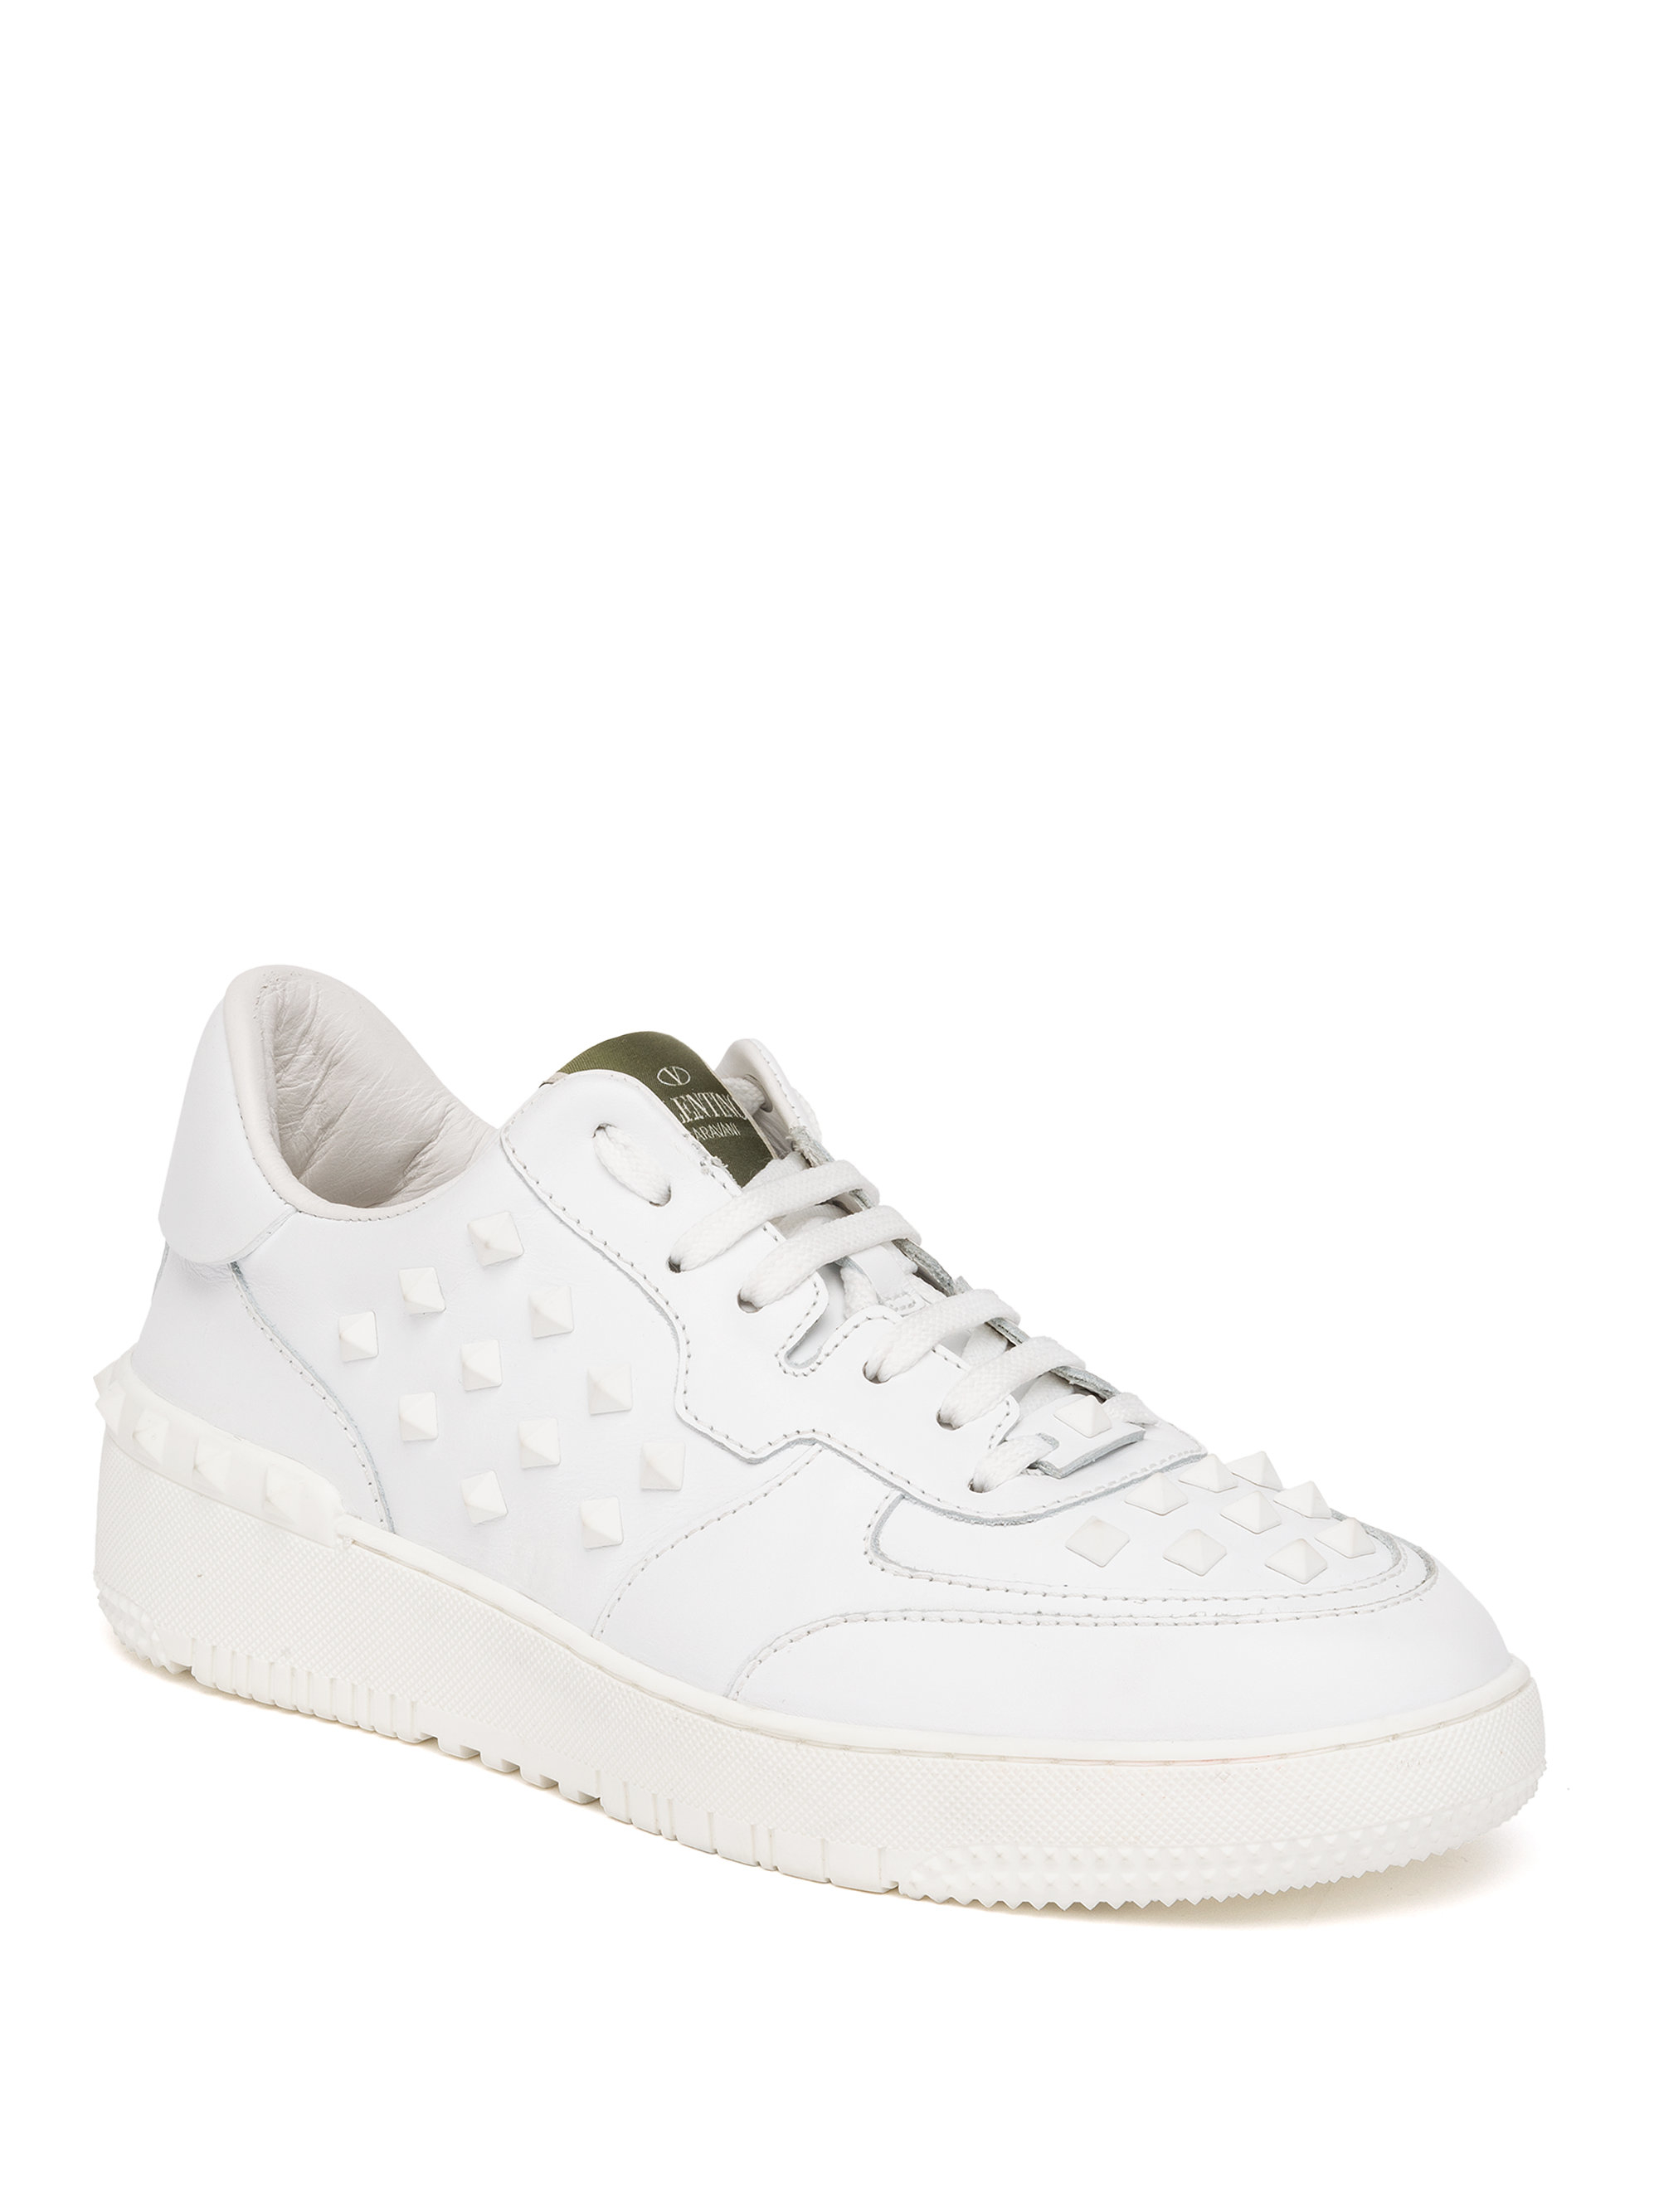 09e4485fab4d Lyst - Valentino Rock Be Studded Low-Top Sneakers in White for Men